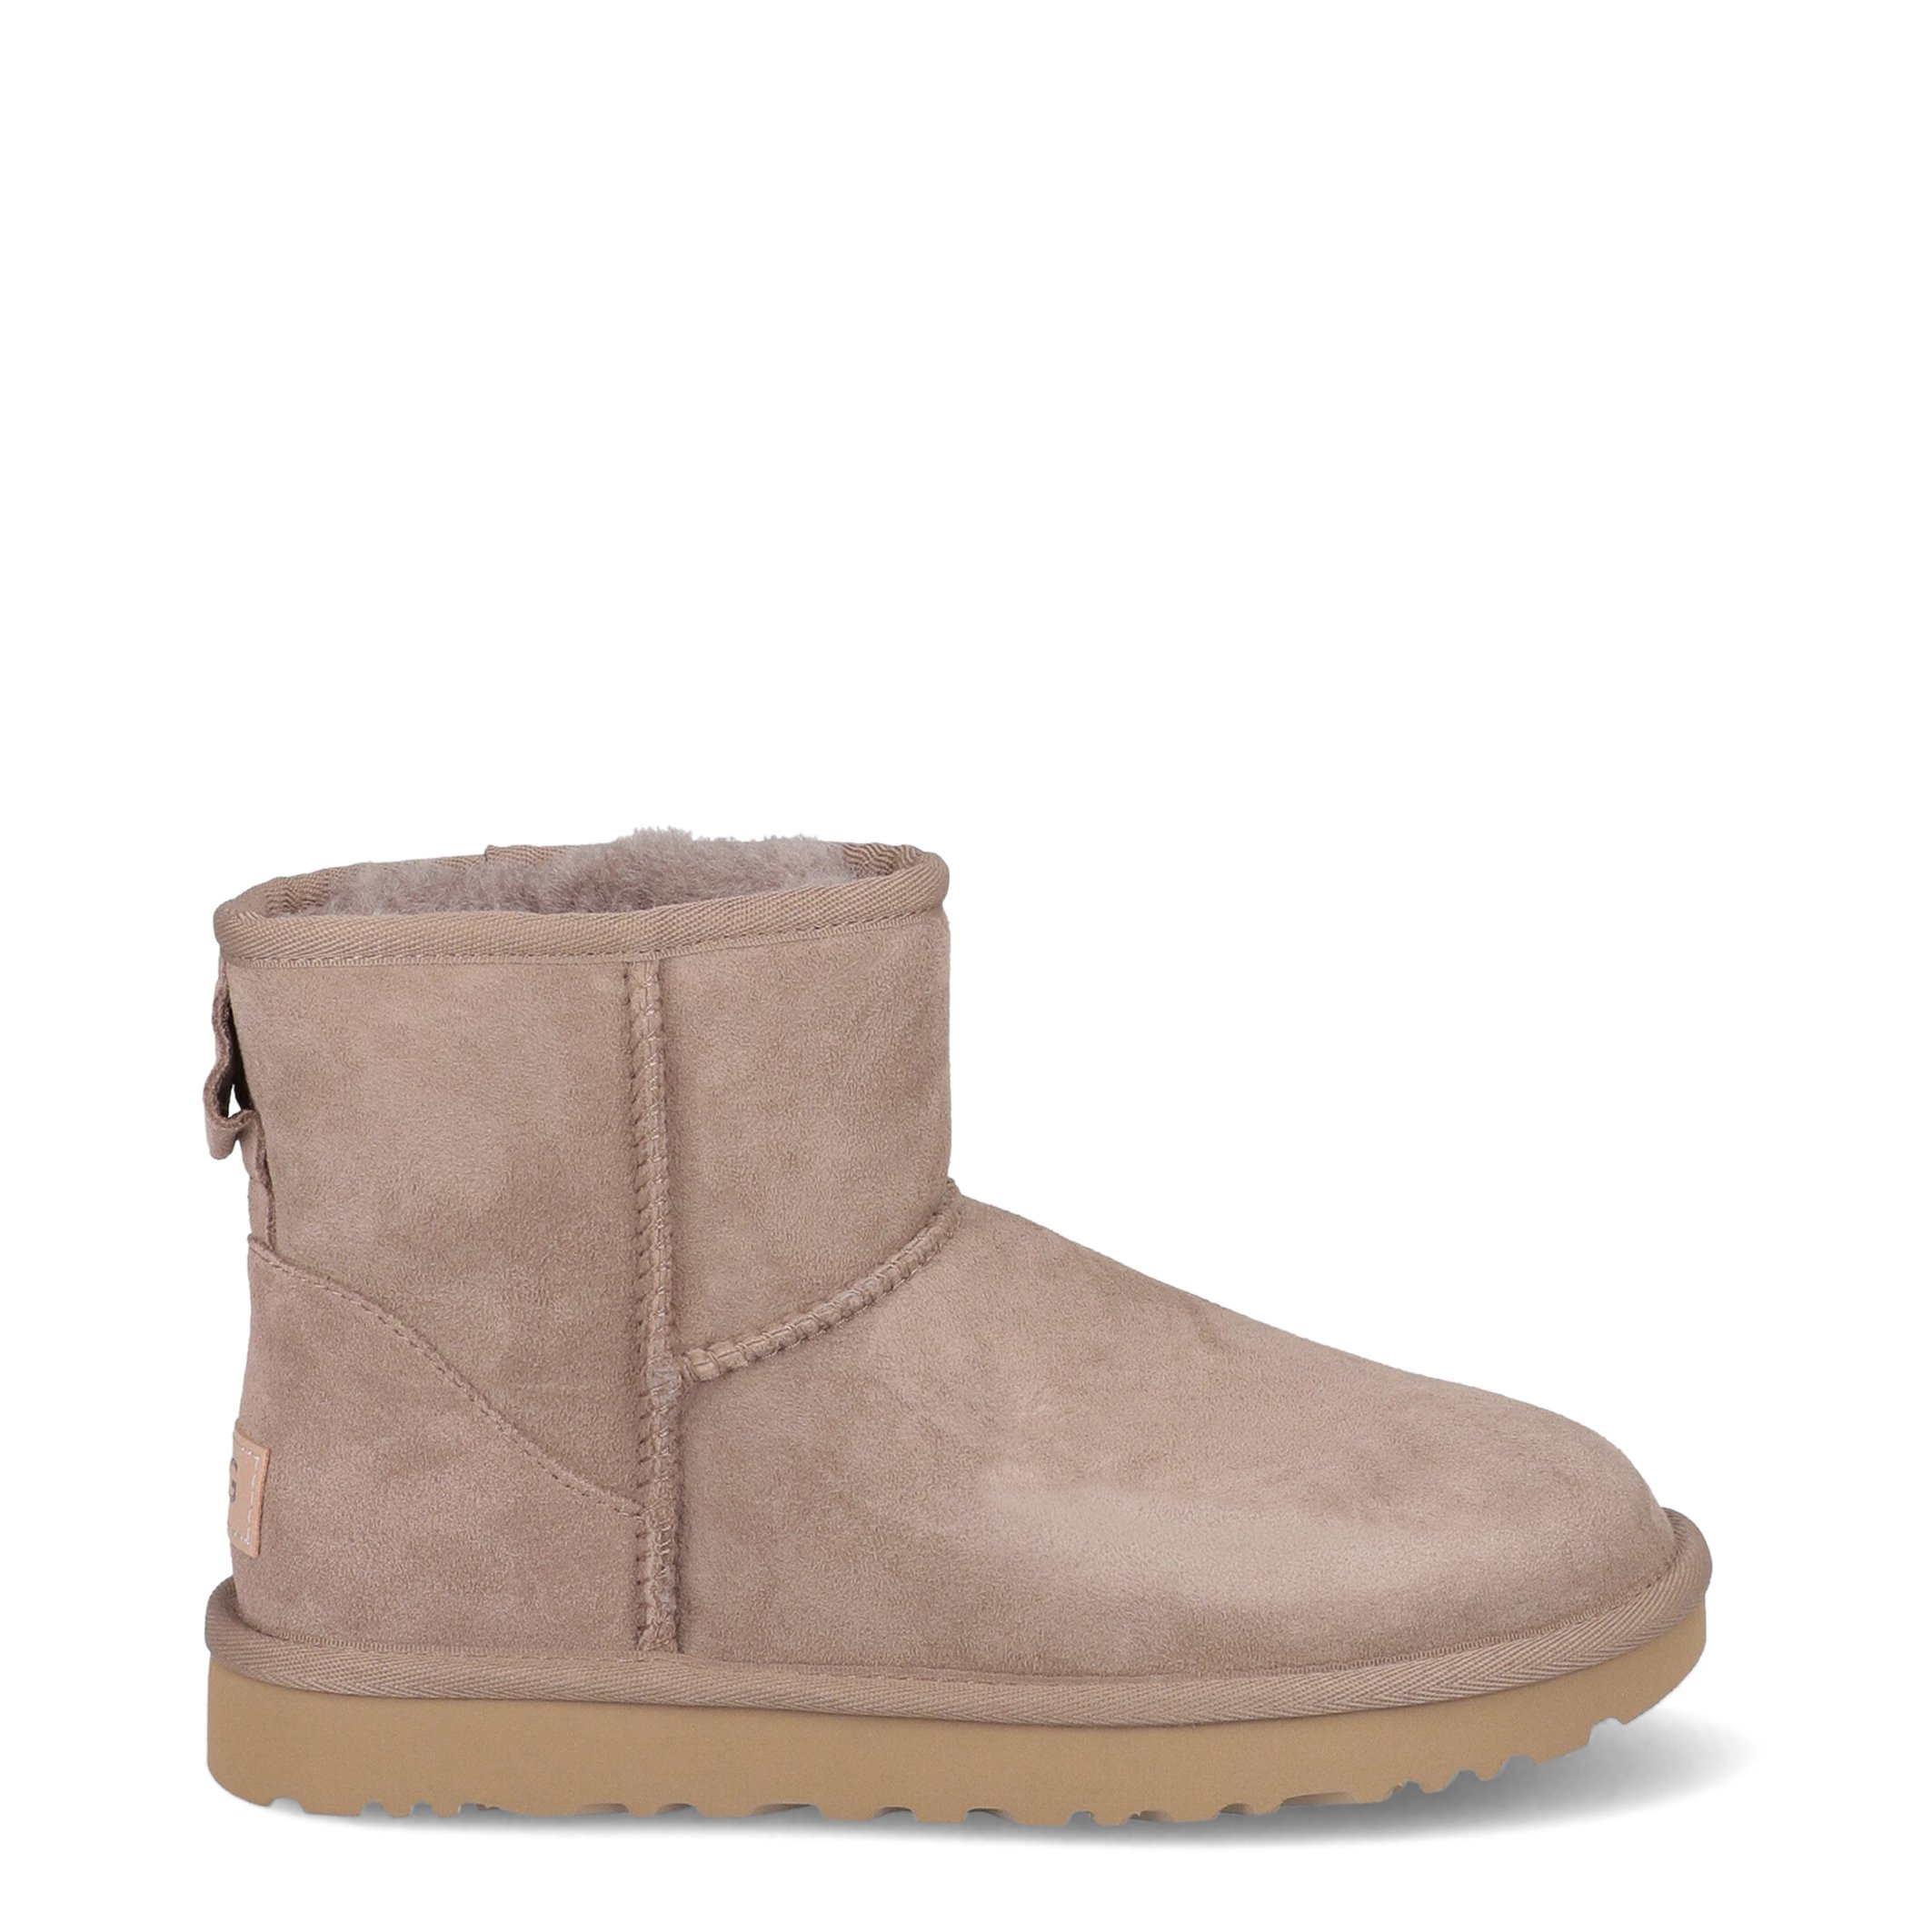 UGG Women's Ankle Boot Various Colours 1016222 - brown-1 EU 36